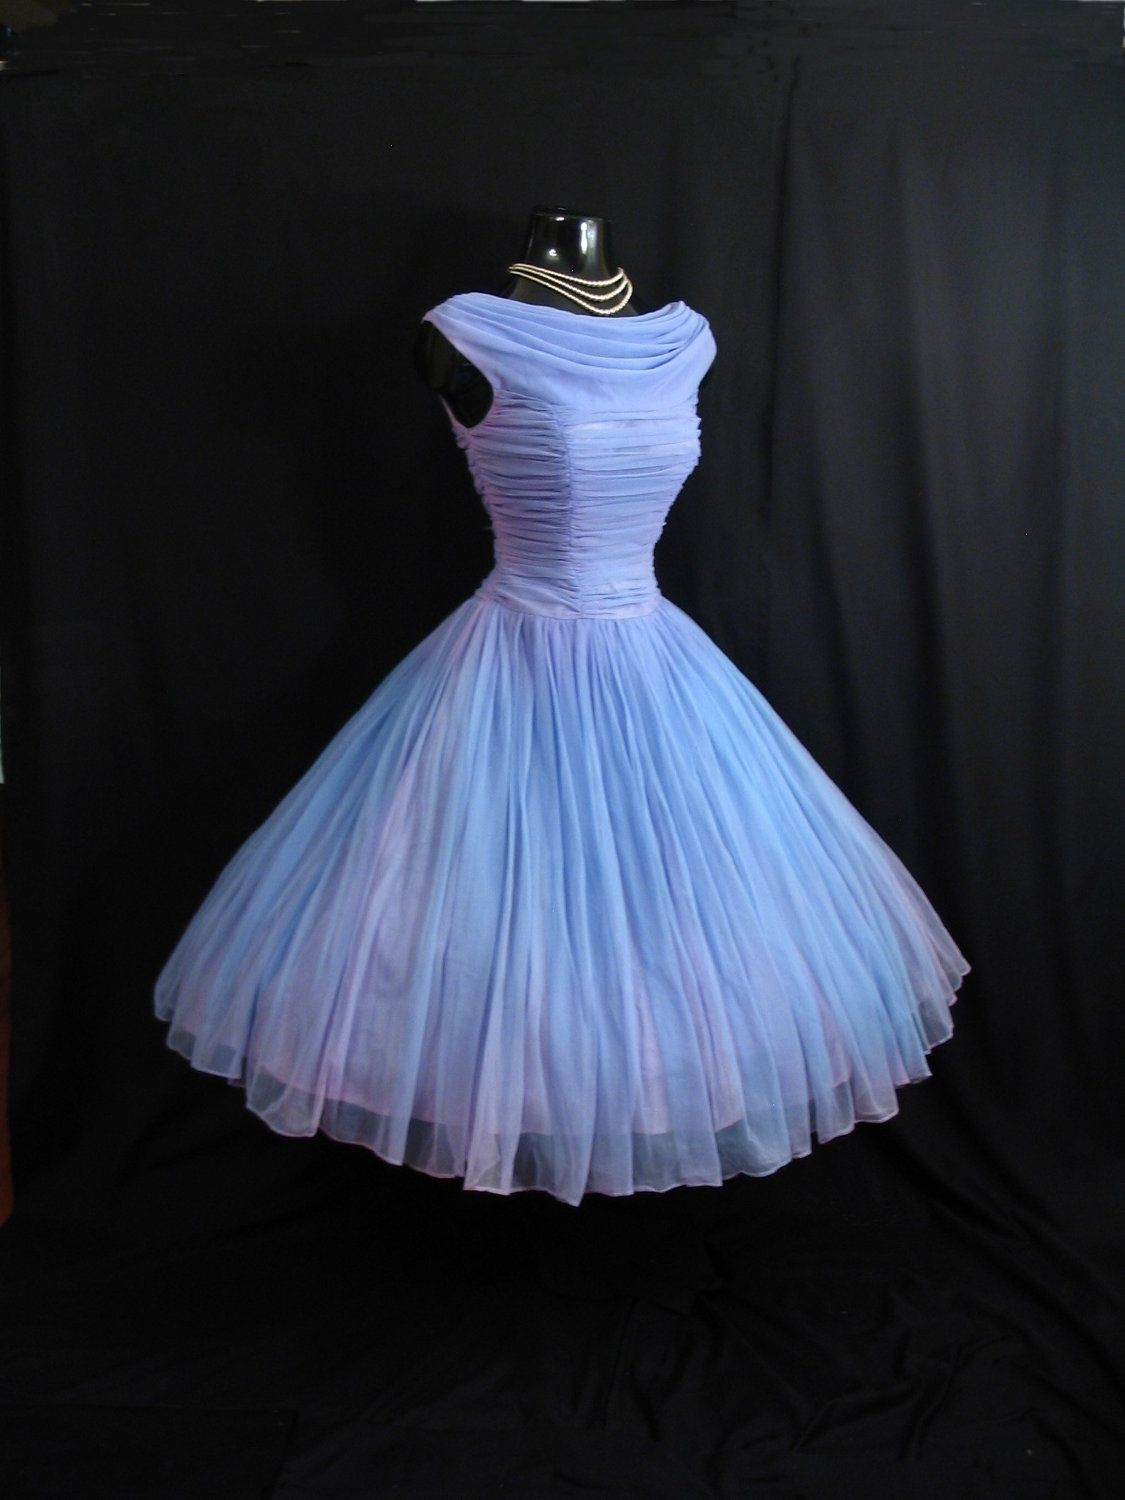 c91baaf9d007 Vintage 1950's 50s Periwinkle Blue Lilac Ruched Chiffon Party Prom Wedding Dress  Gown. $249.99, via Etsy.